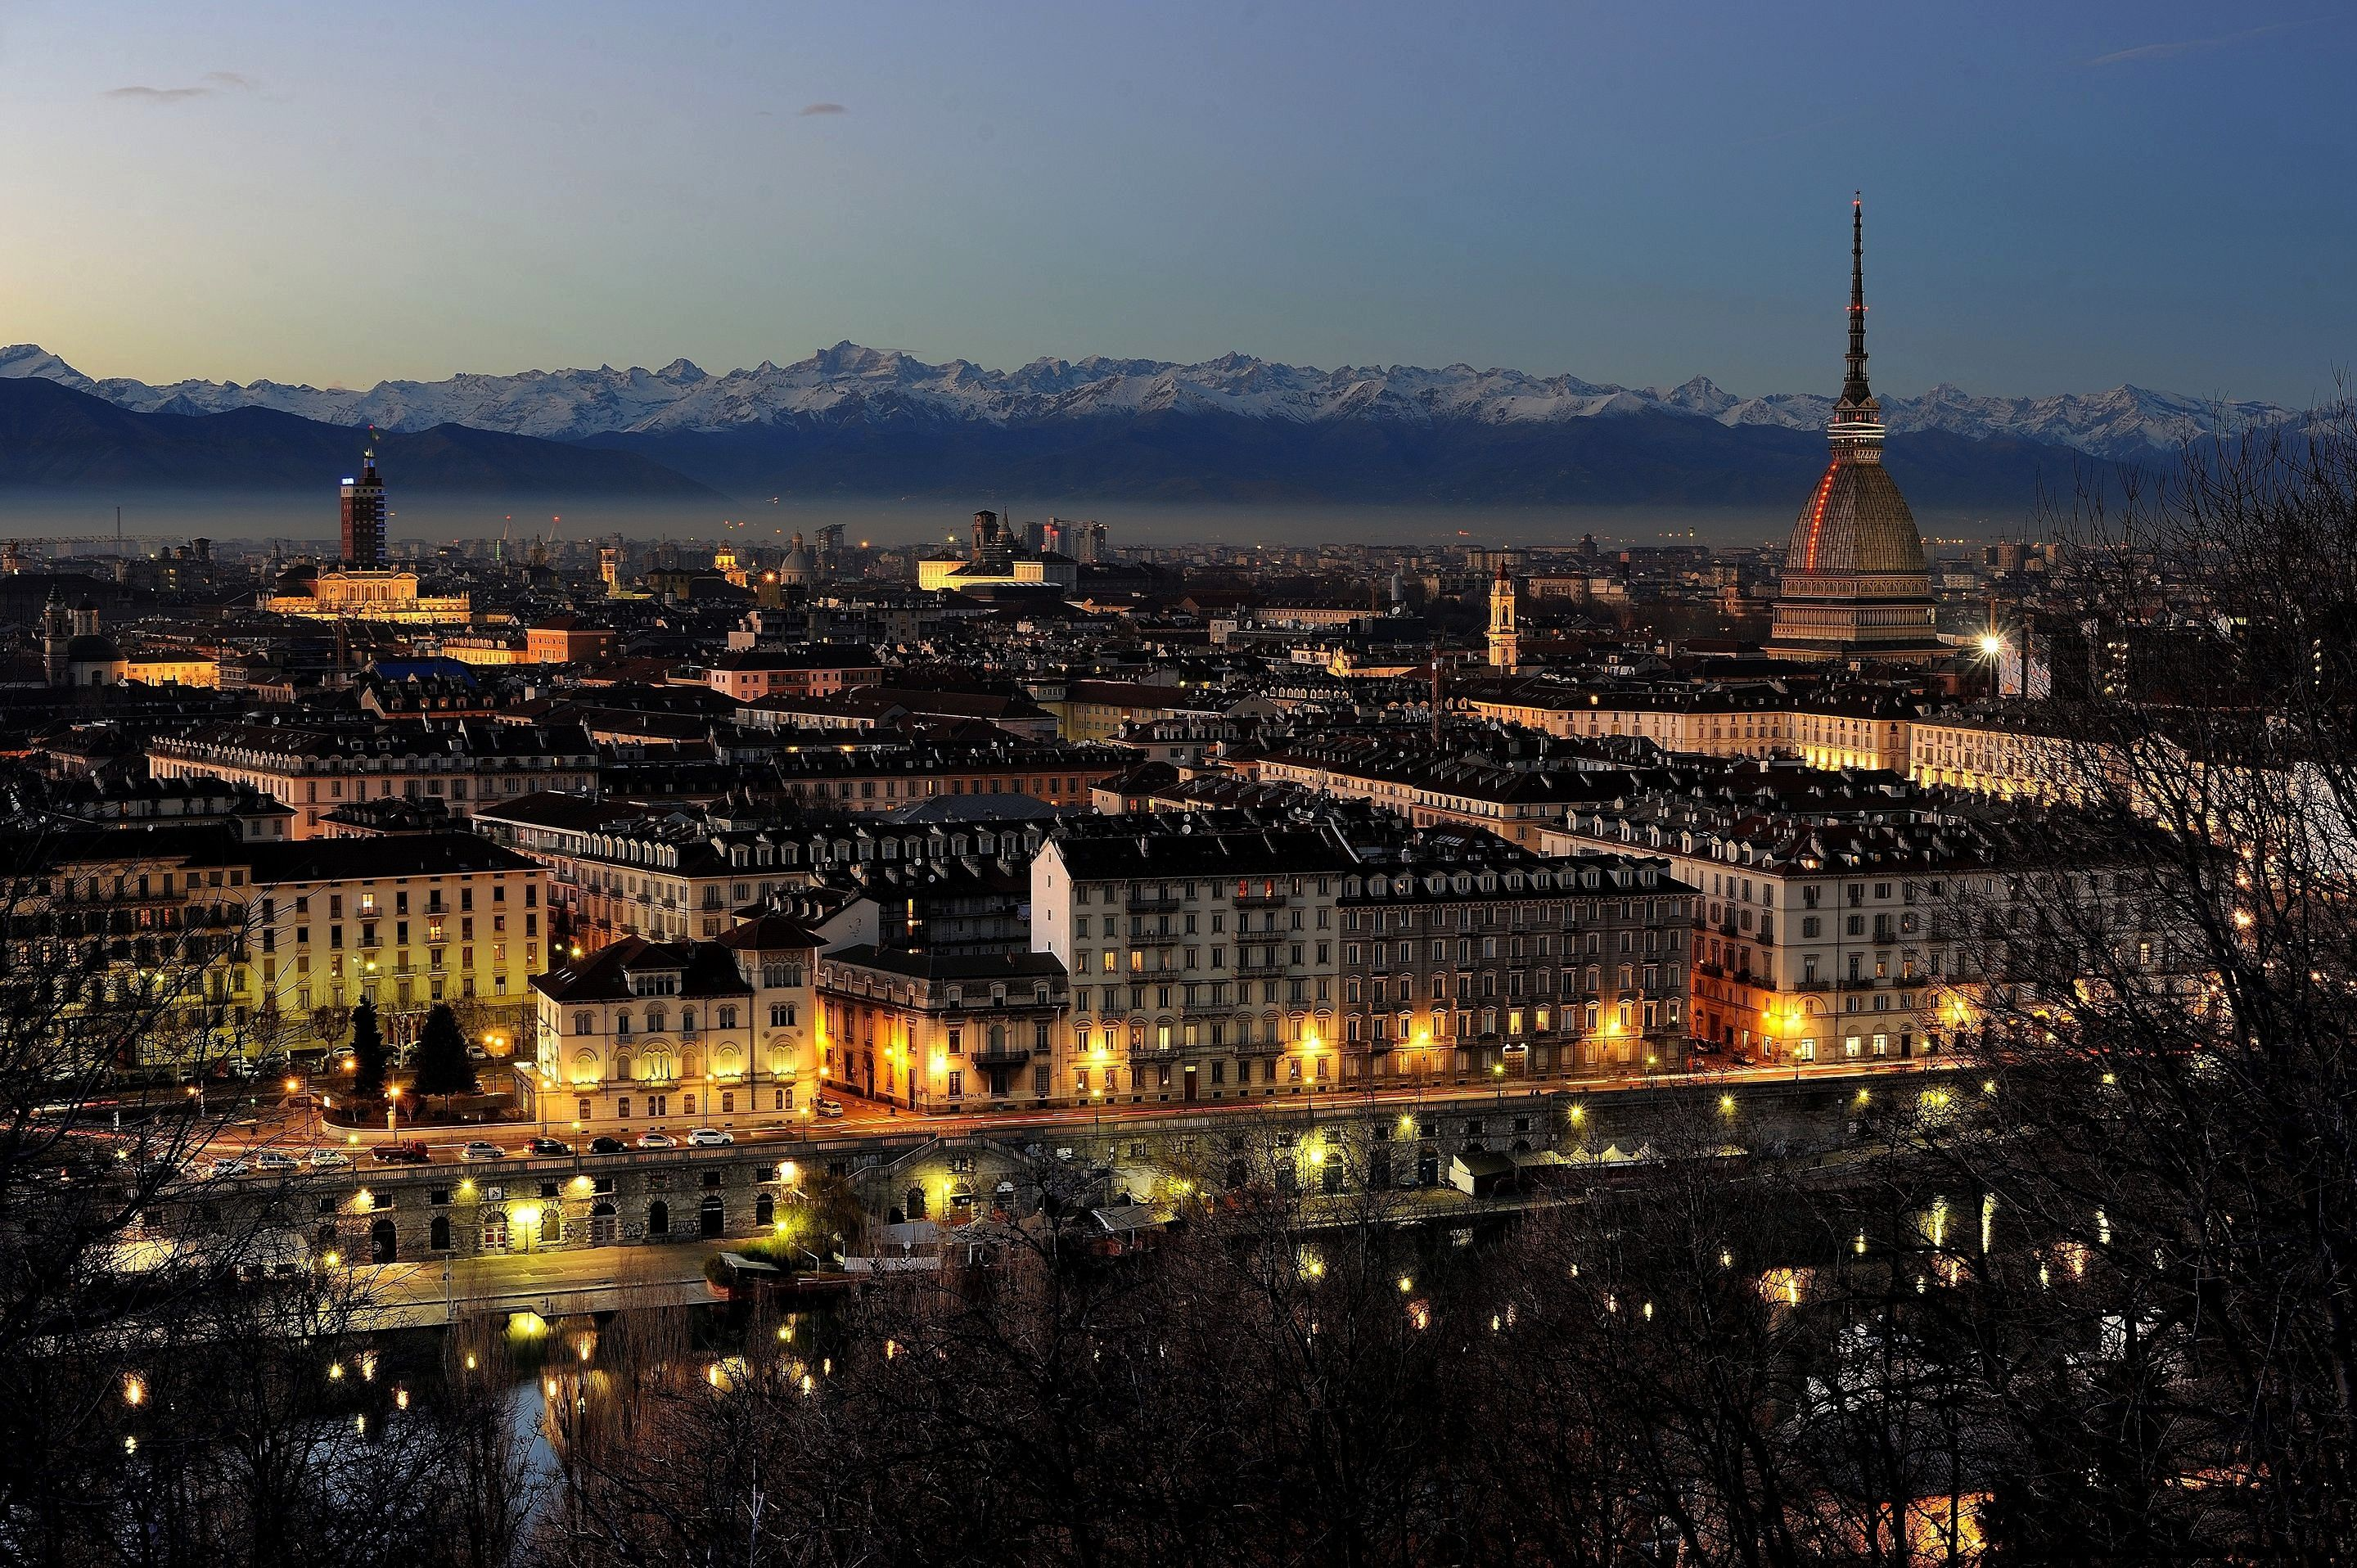 19 2020 Towns and Cities in Italy  Italy Cities Map Cinematic Street Photography in Turin by Emanuele Zola Italy Physical Map 16 Best Cities In Italy To Visit This Year...